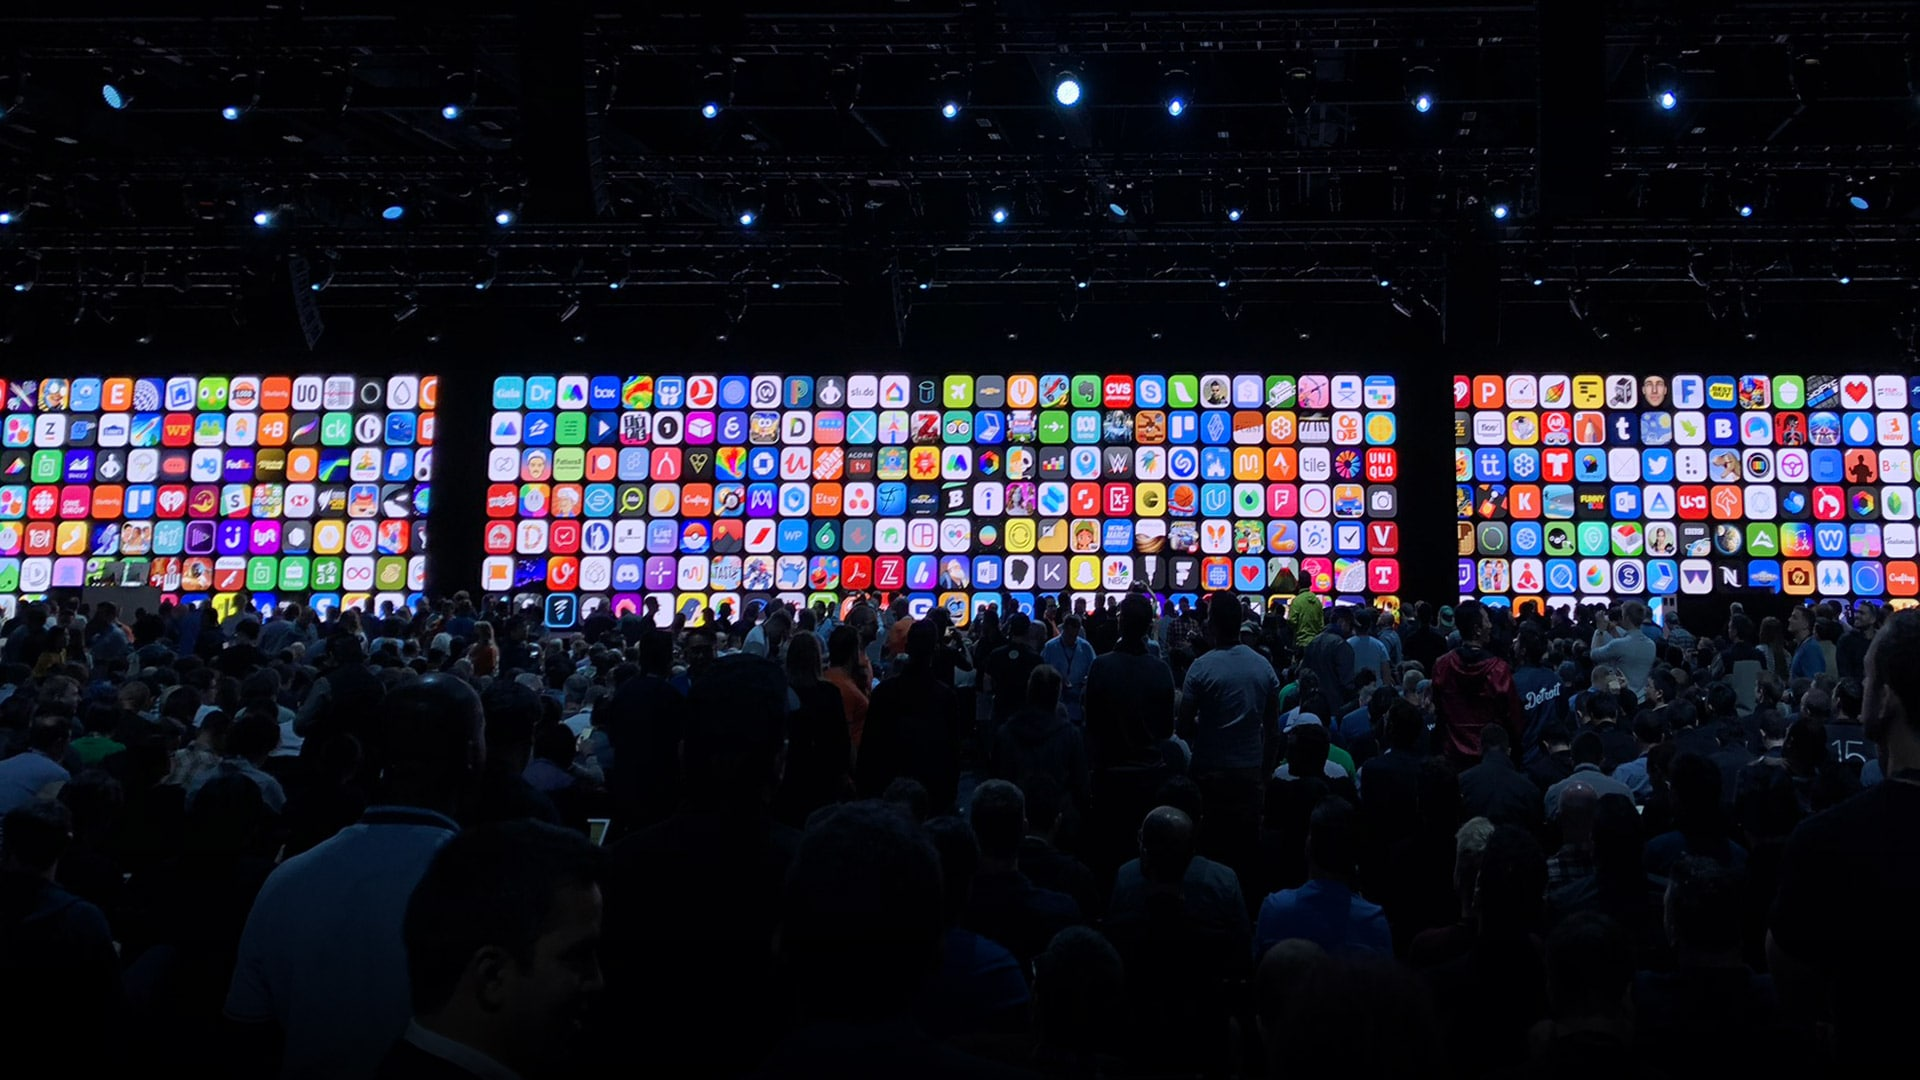 WWDC 2018 conference